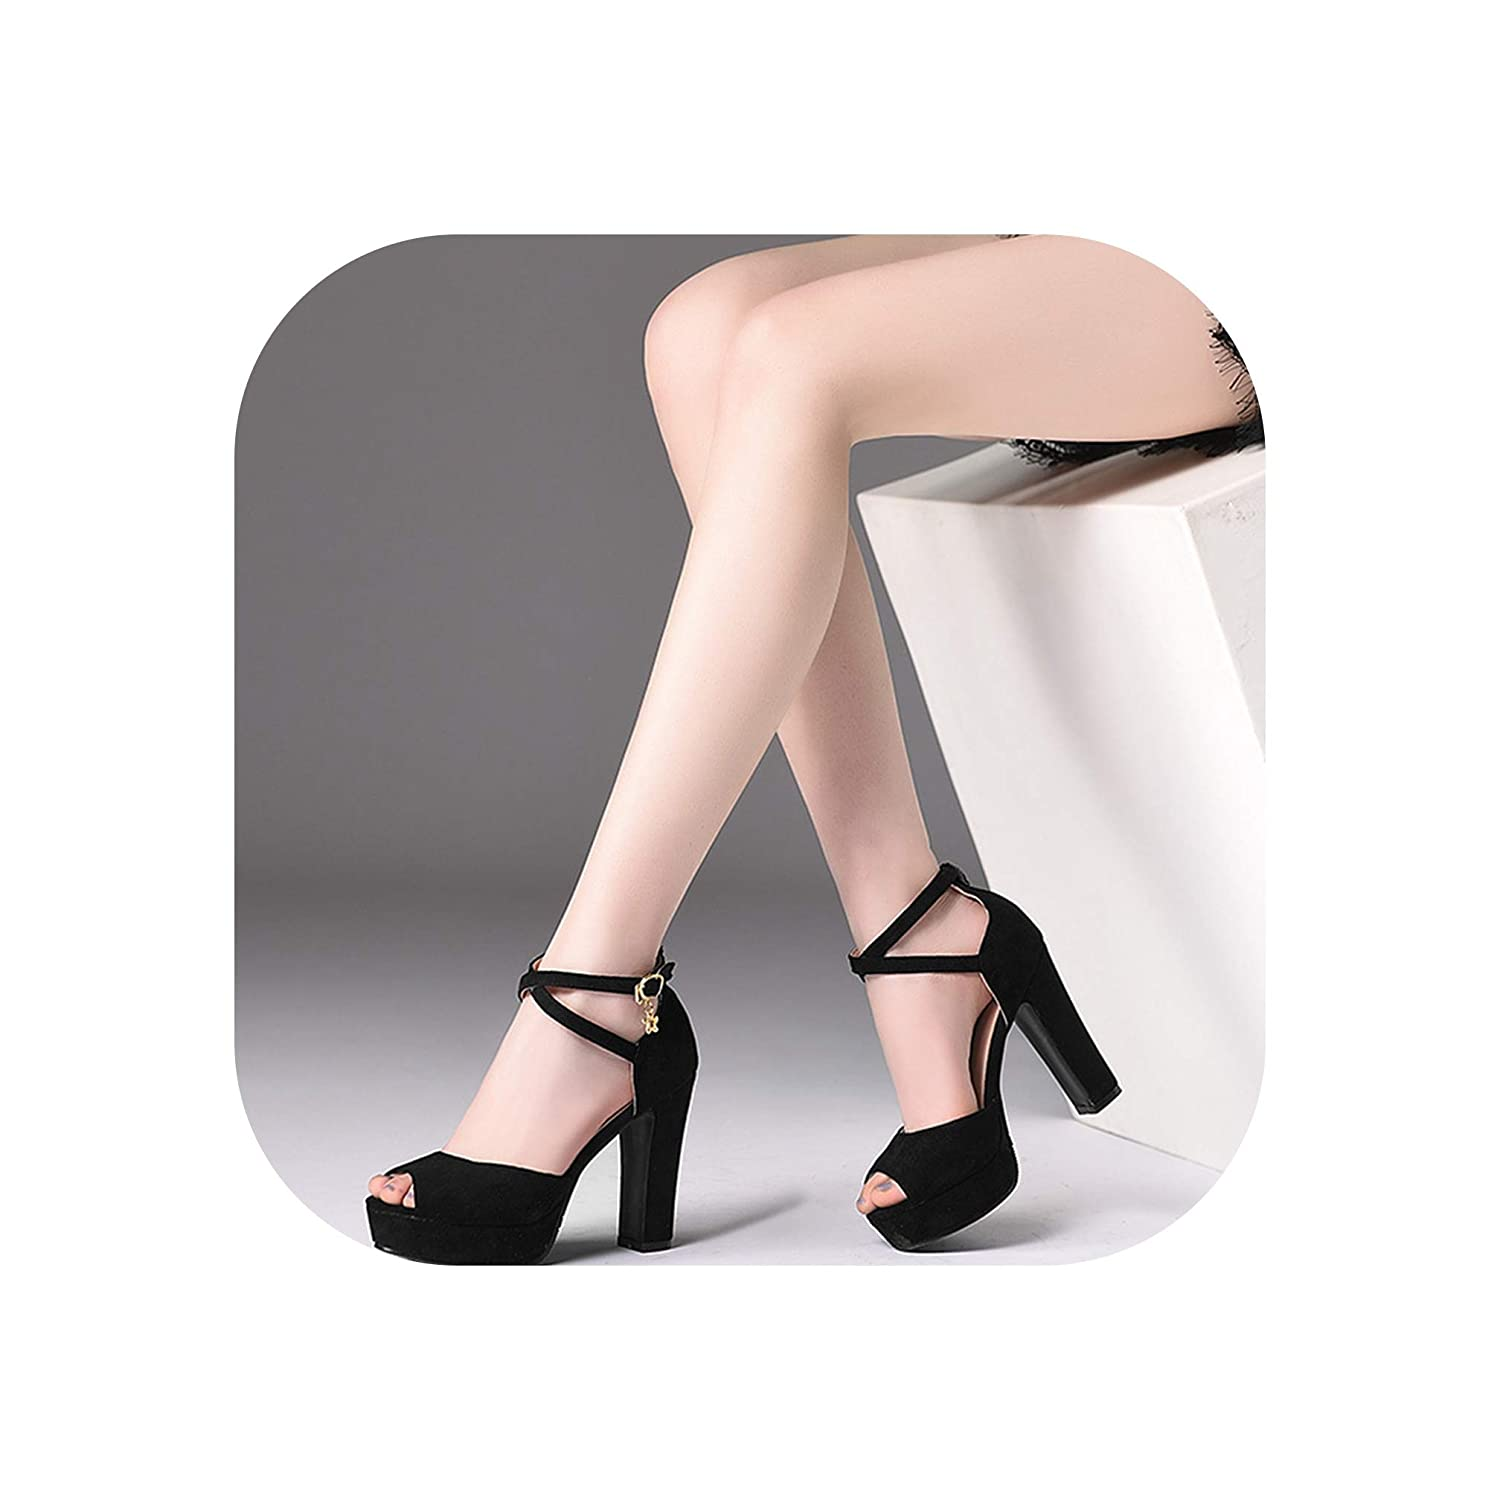 Black Woman Buckle Strap shoes Thick High Heels Peep Toe Dress shoes Party shoes Sandals